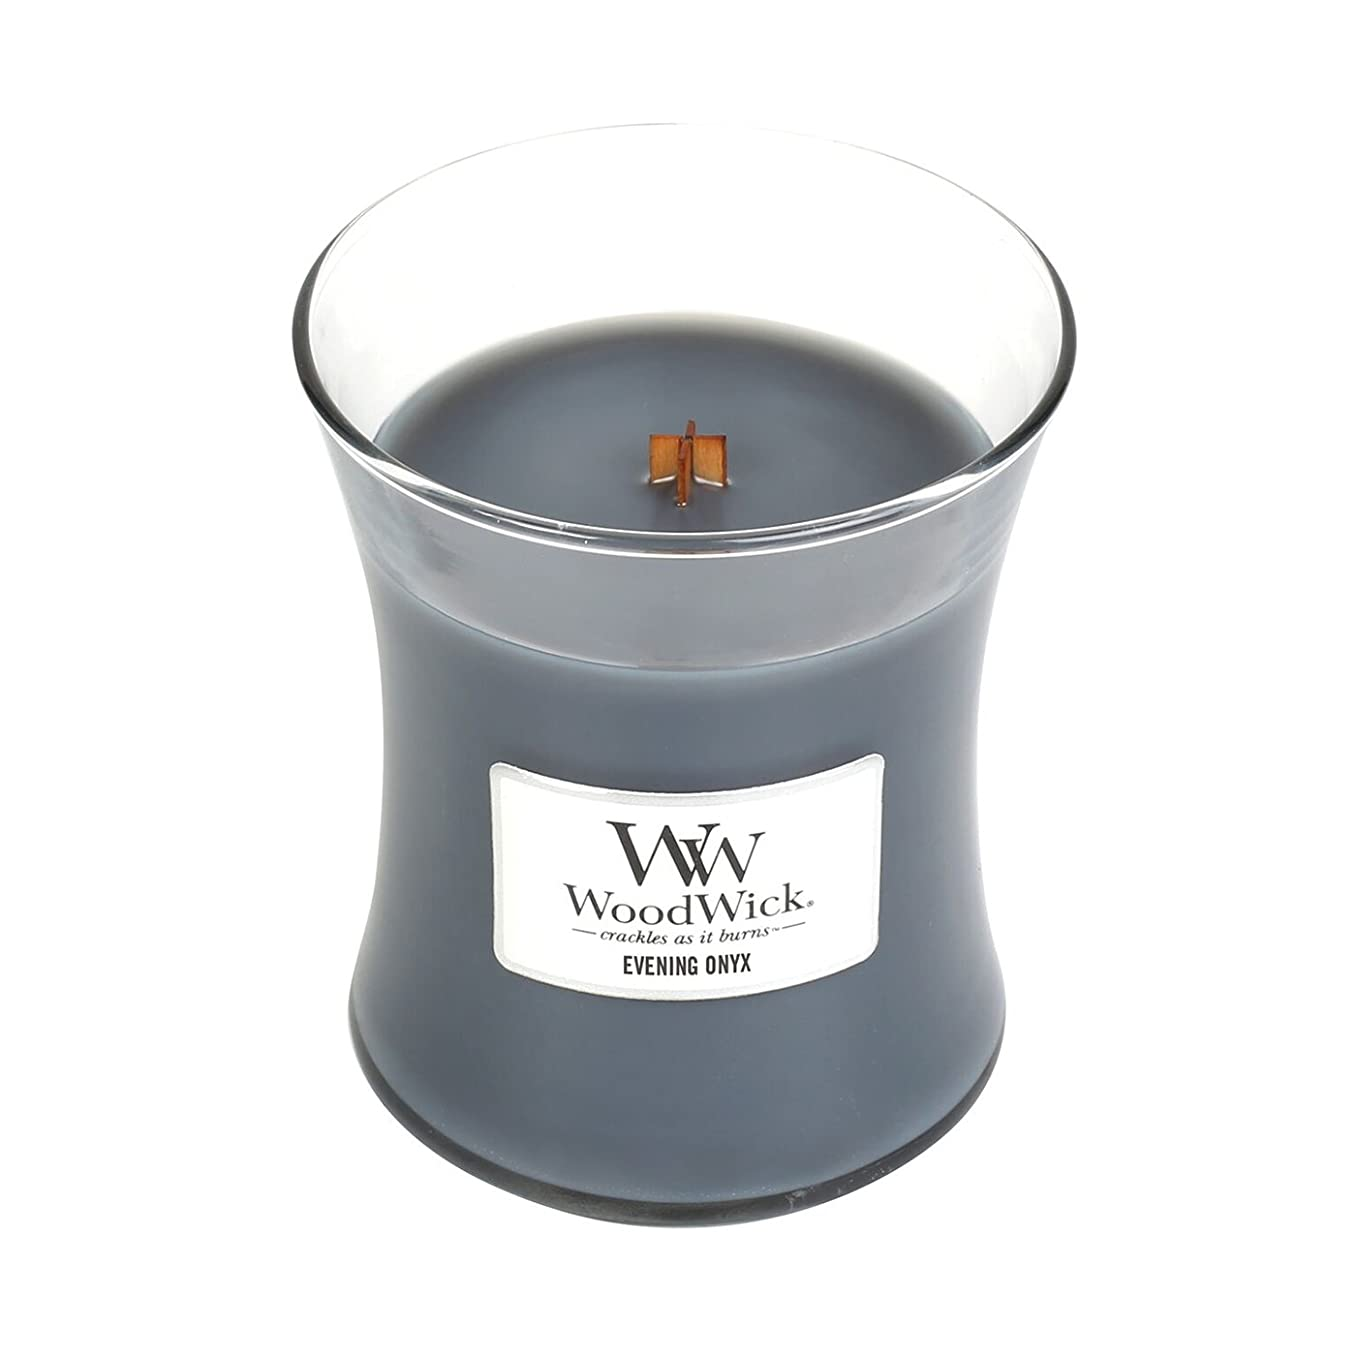 勝利した敗北計算(Medium, Evening Onyx) - WoodWick Medium Hourglass Scented Candle, Evening Onyx